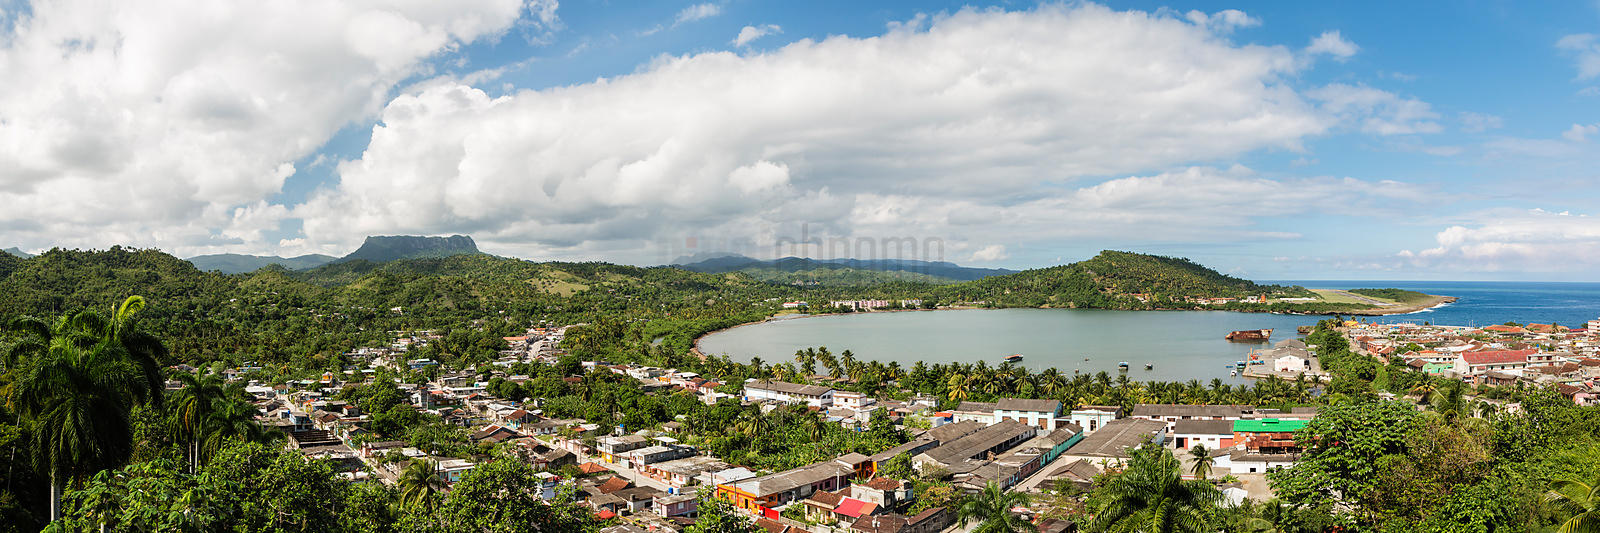 Elevated View of Baracoa and El Yunque